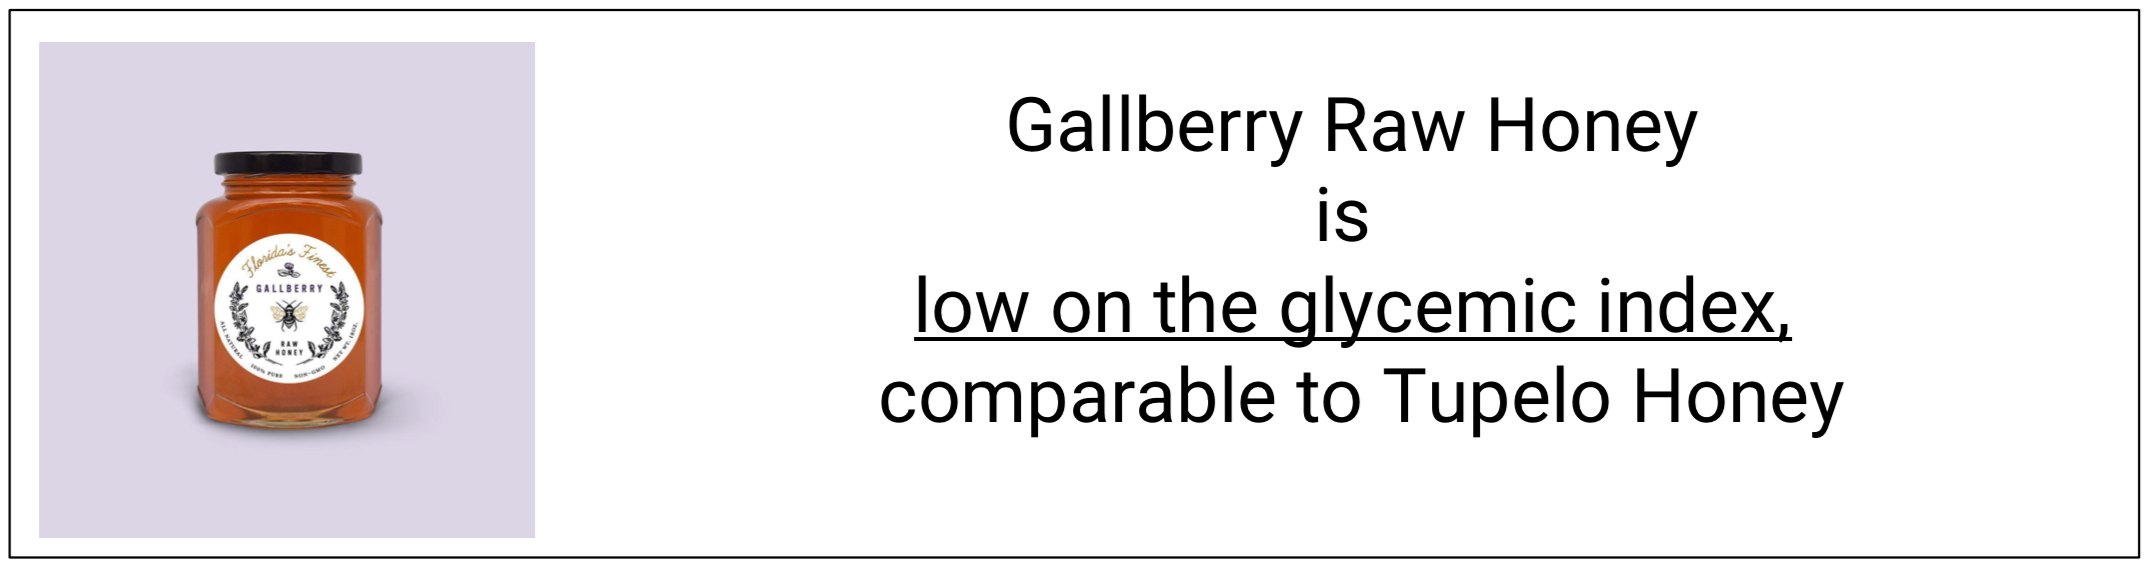 Gallberry raw honey is low on glycemic index, could be compared to benefits of Tupelo Honey. Natural remedy soo delicious and great for your body!